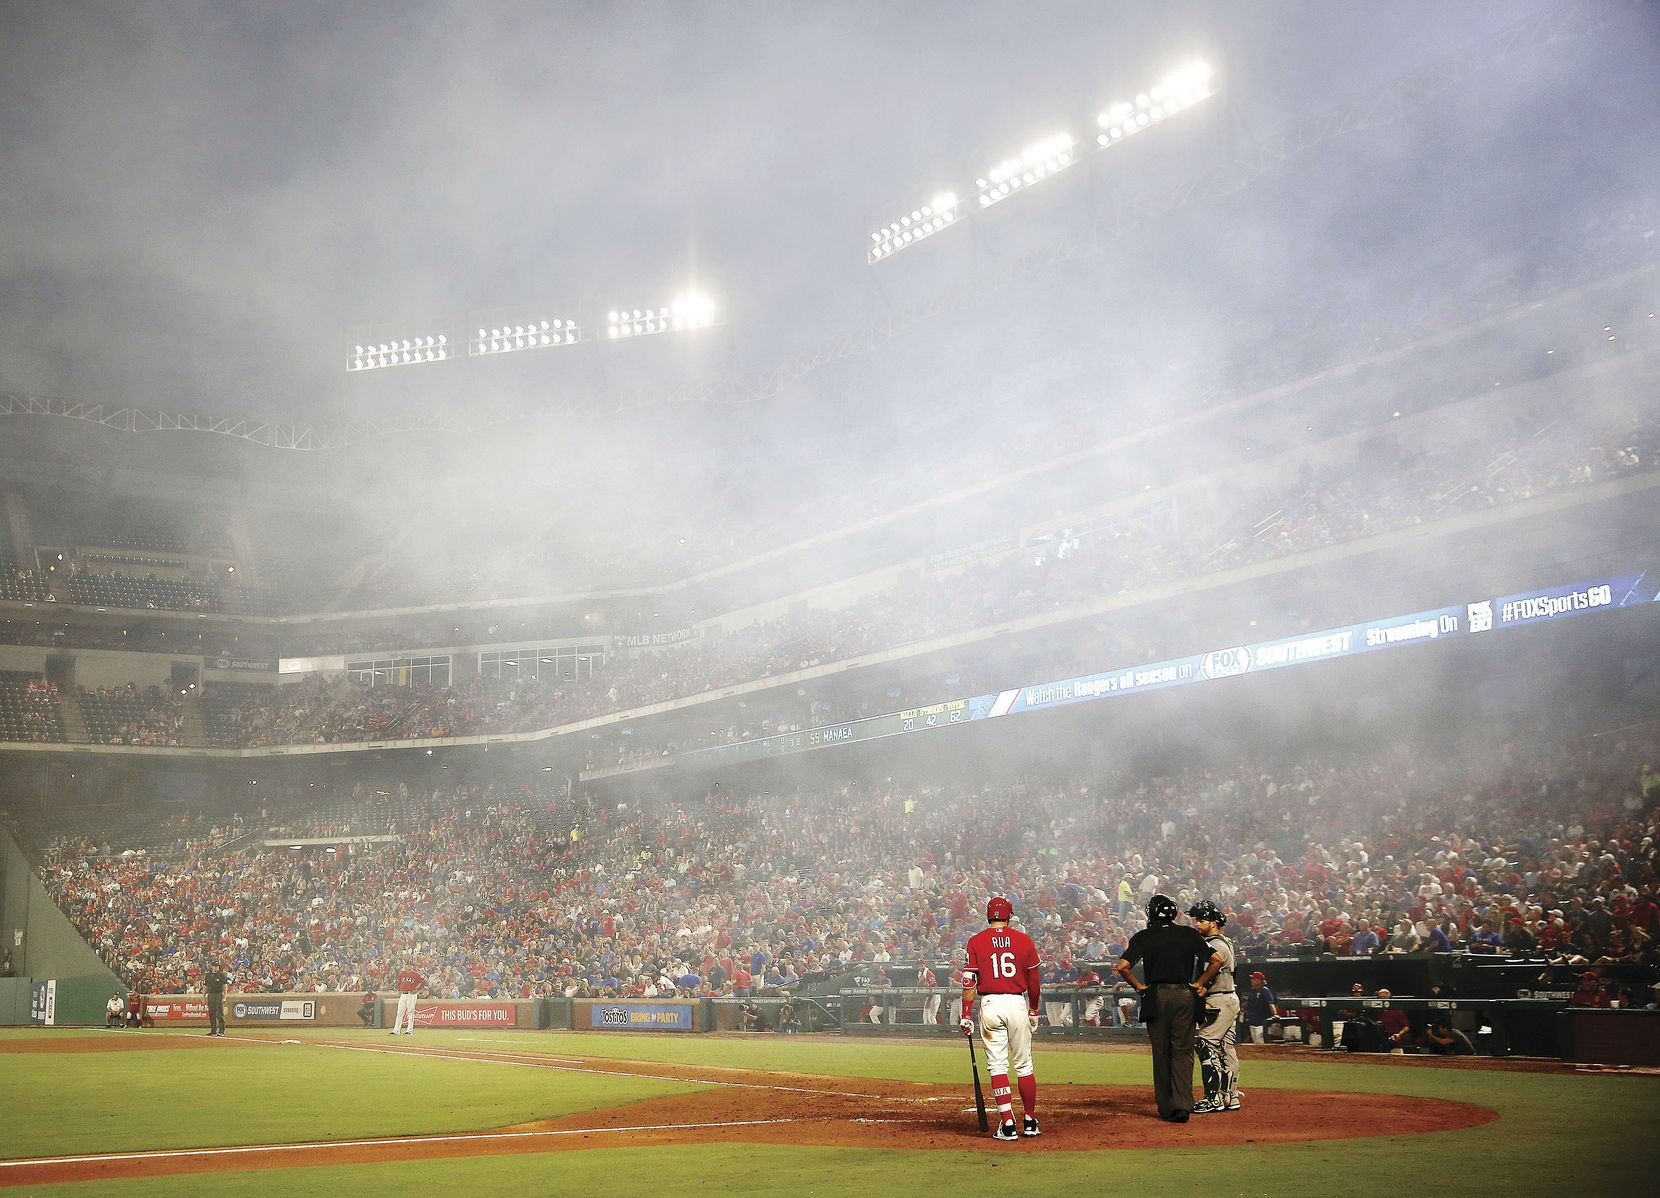 Texas Rangers left fielder Ryan Rua waited to bat as the smoke from the fireworks following a solo home run by catcher Jonathan Lucroy dissipated in the fourth inning of a game against the Oakland Athletics at Globe Life Park in Arlington on Aug. 17. The Rangers won that game and 94 others en route to the best regular-season record in the American League.